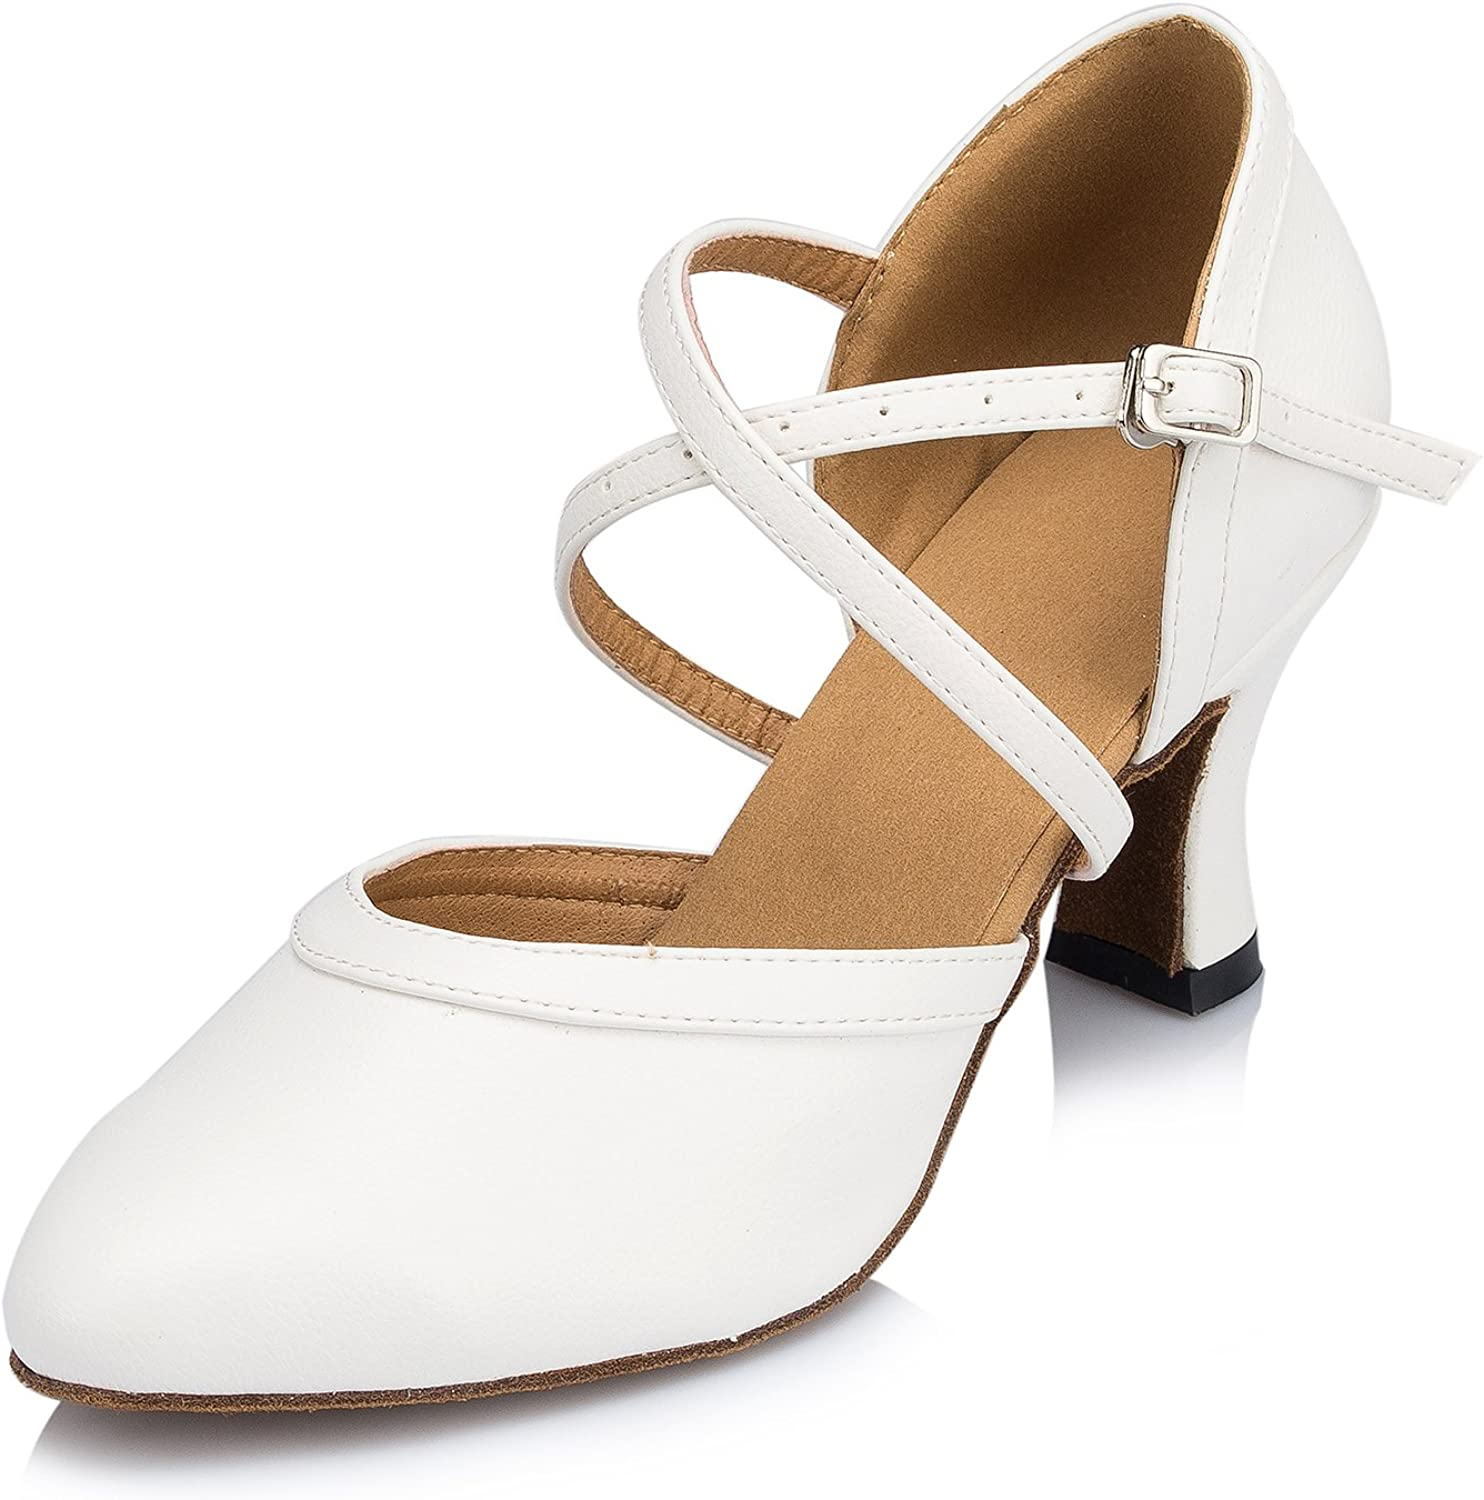 Honeystore Women's Synthetic Leather Closed-Toe Dance Shoes Criss Cross Ankle Strap